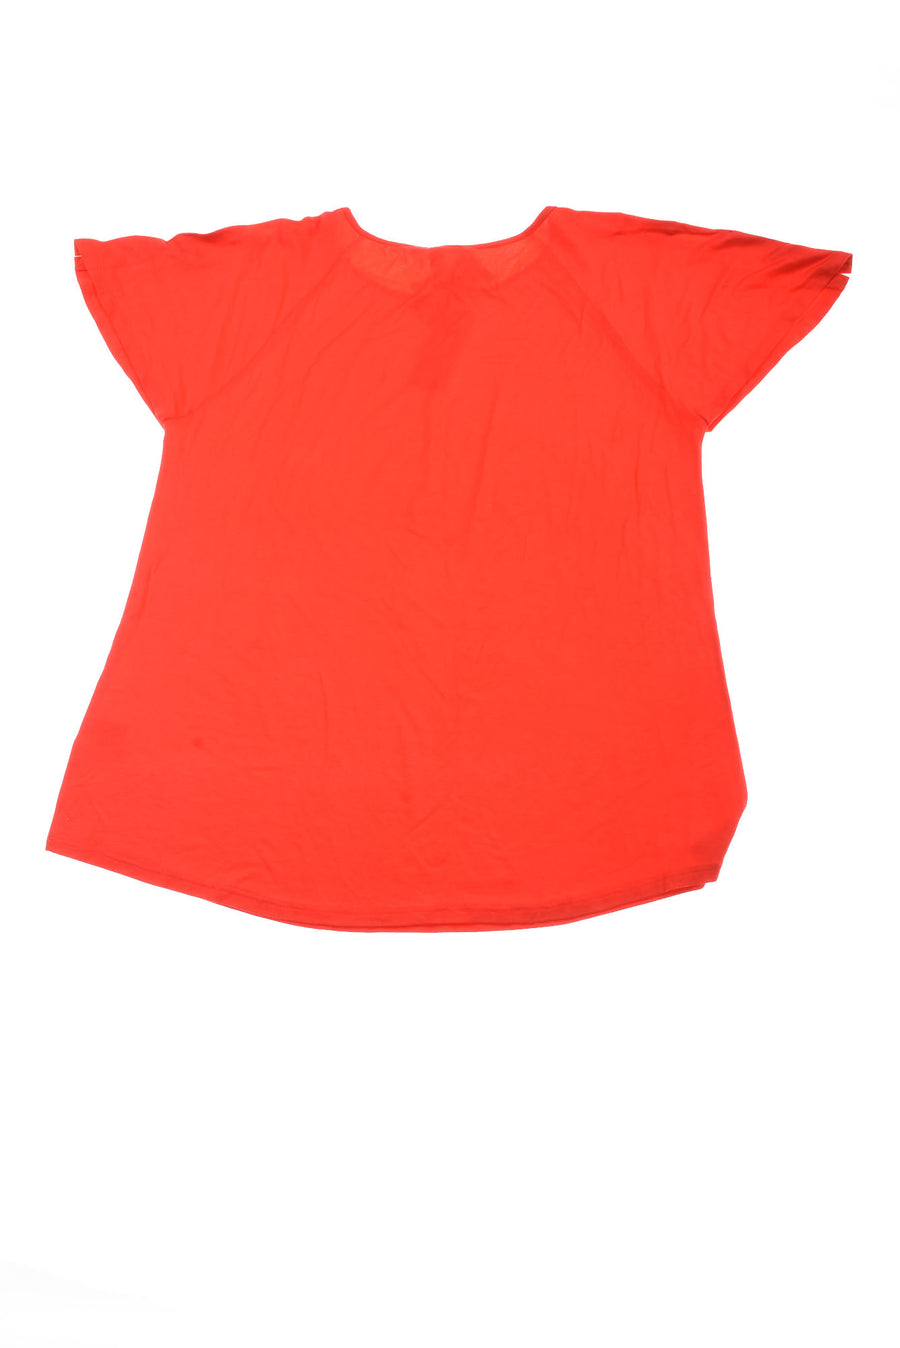 NEW Cable & Gauge Women's Top Large Red Pop